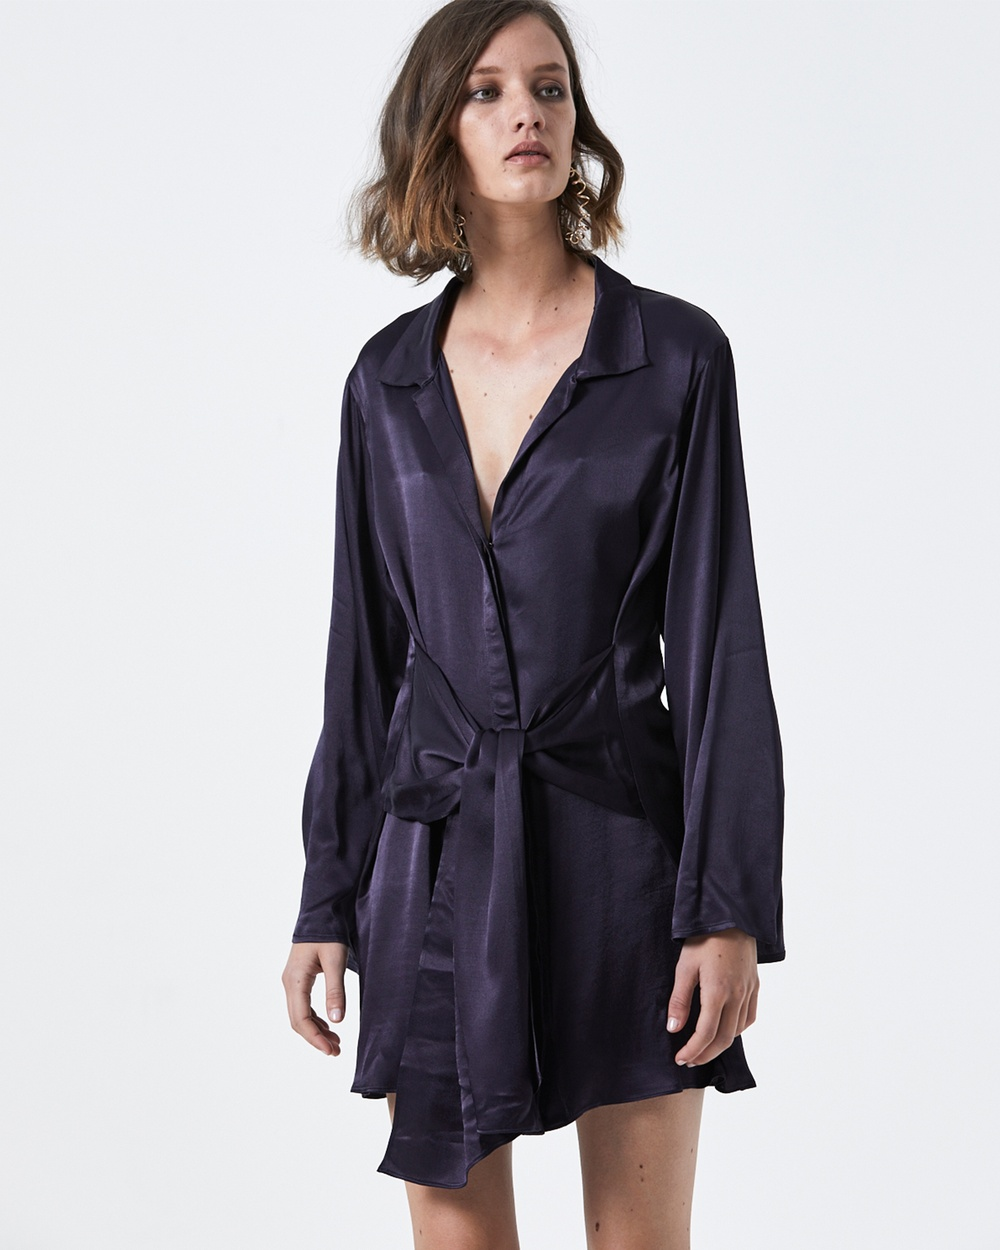 Carver Estee Shirtdress Dresses Navy Estee Shirtdress